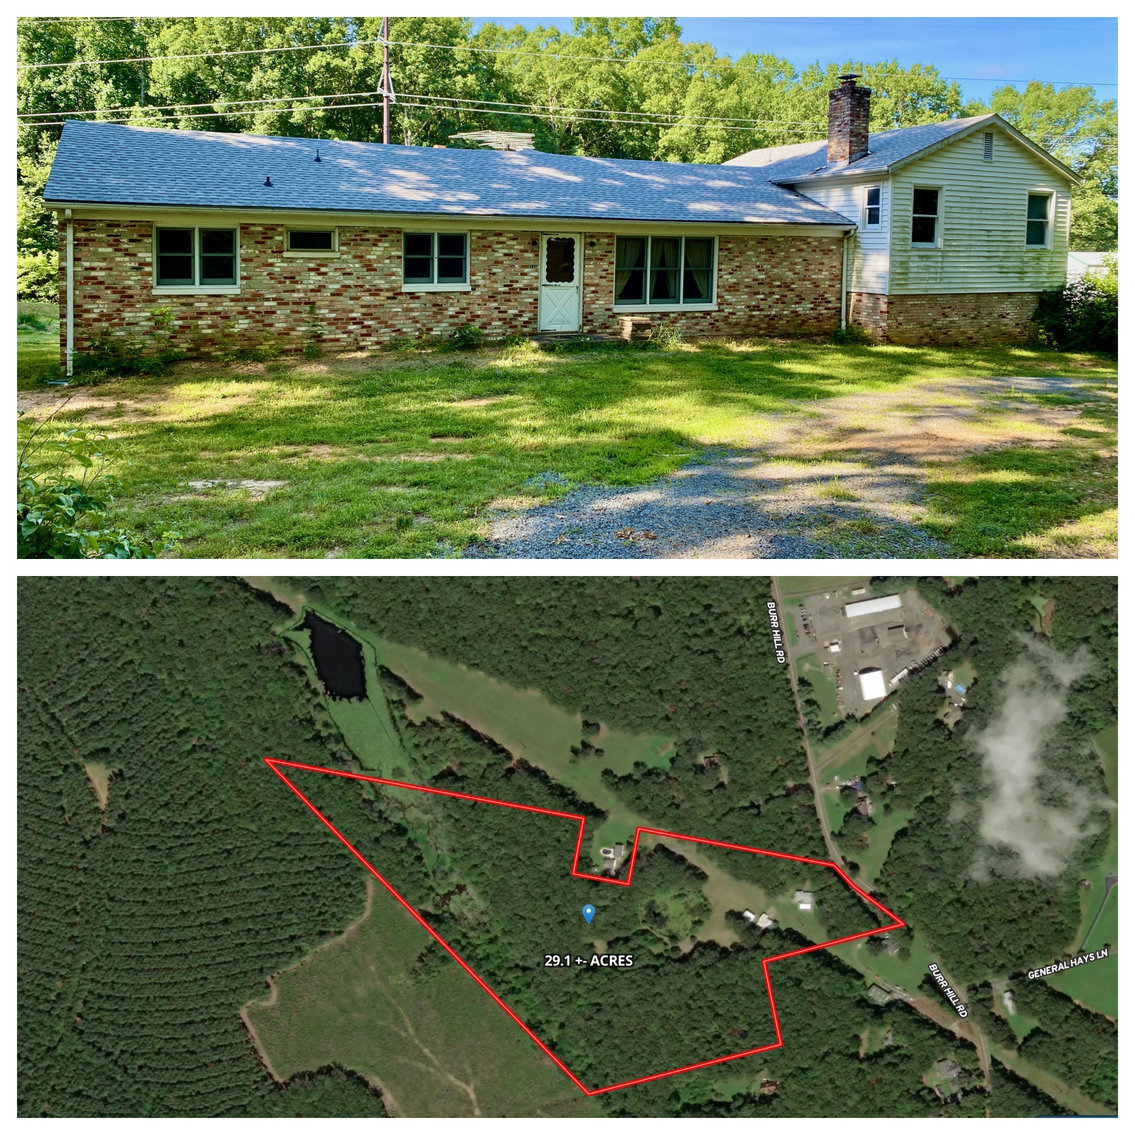 Image for  AUG 4 4 BR/4 BA Home on 29.1 +/- Acres in Orange County, VA--SELLS to the HIGHEST BIDDER!!